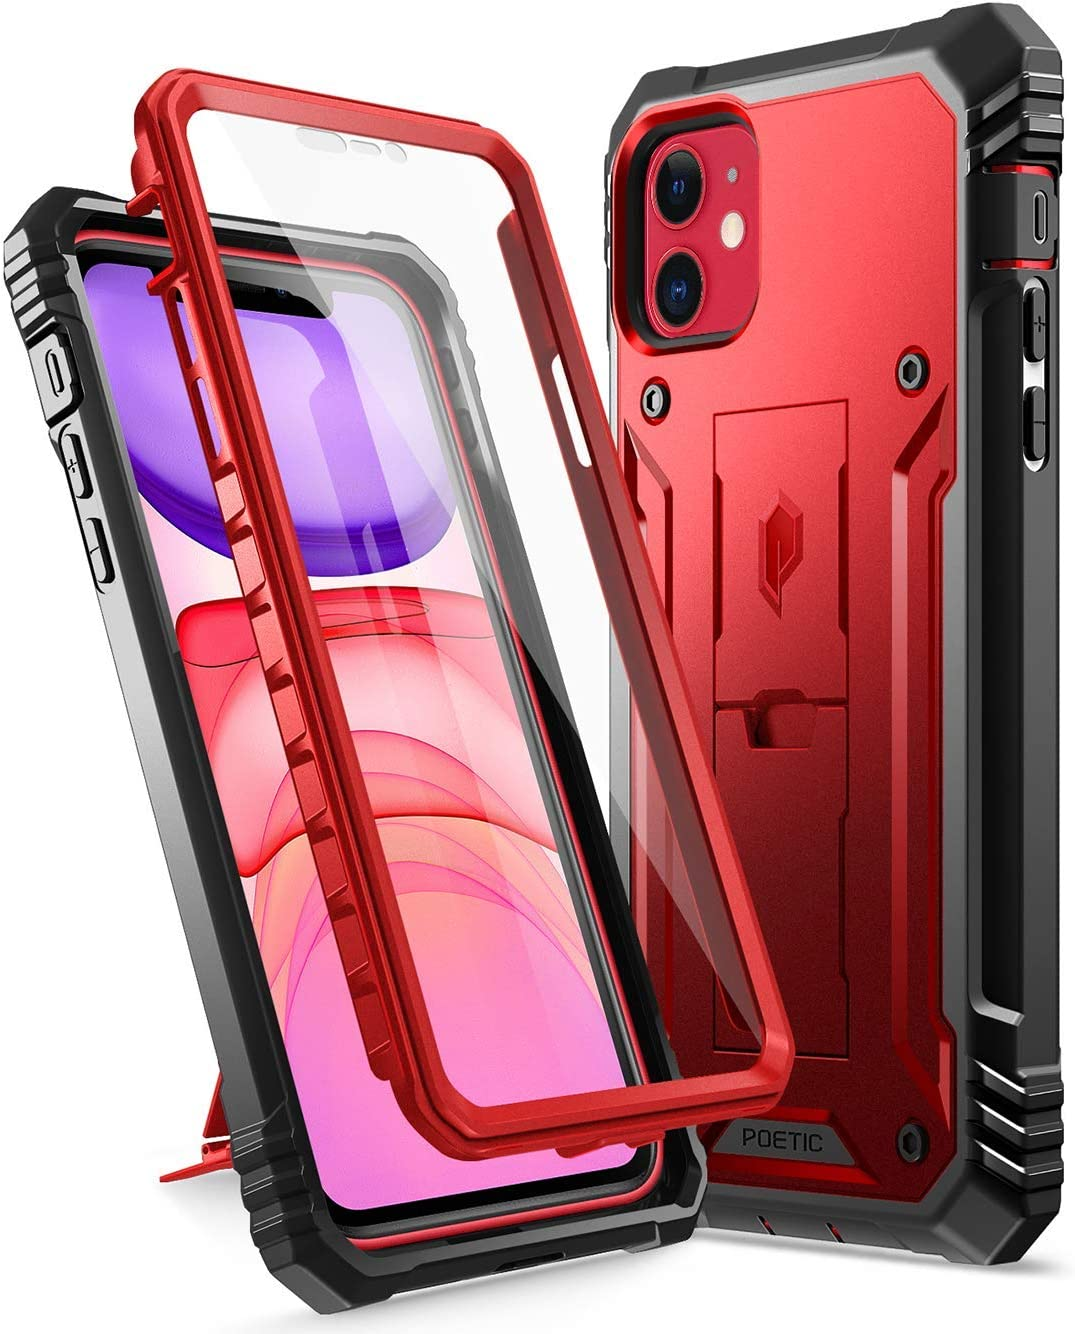 iPhone 11 Rugged Case with Kickstand, Poetic Full-Body Dual-Layer Shockproof Protective Cover, Built-in-Screen Protector, Revolution Series, for Apple iPhone 11 (2019) 6.1 Inch, Metallic Red